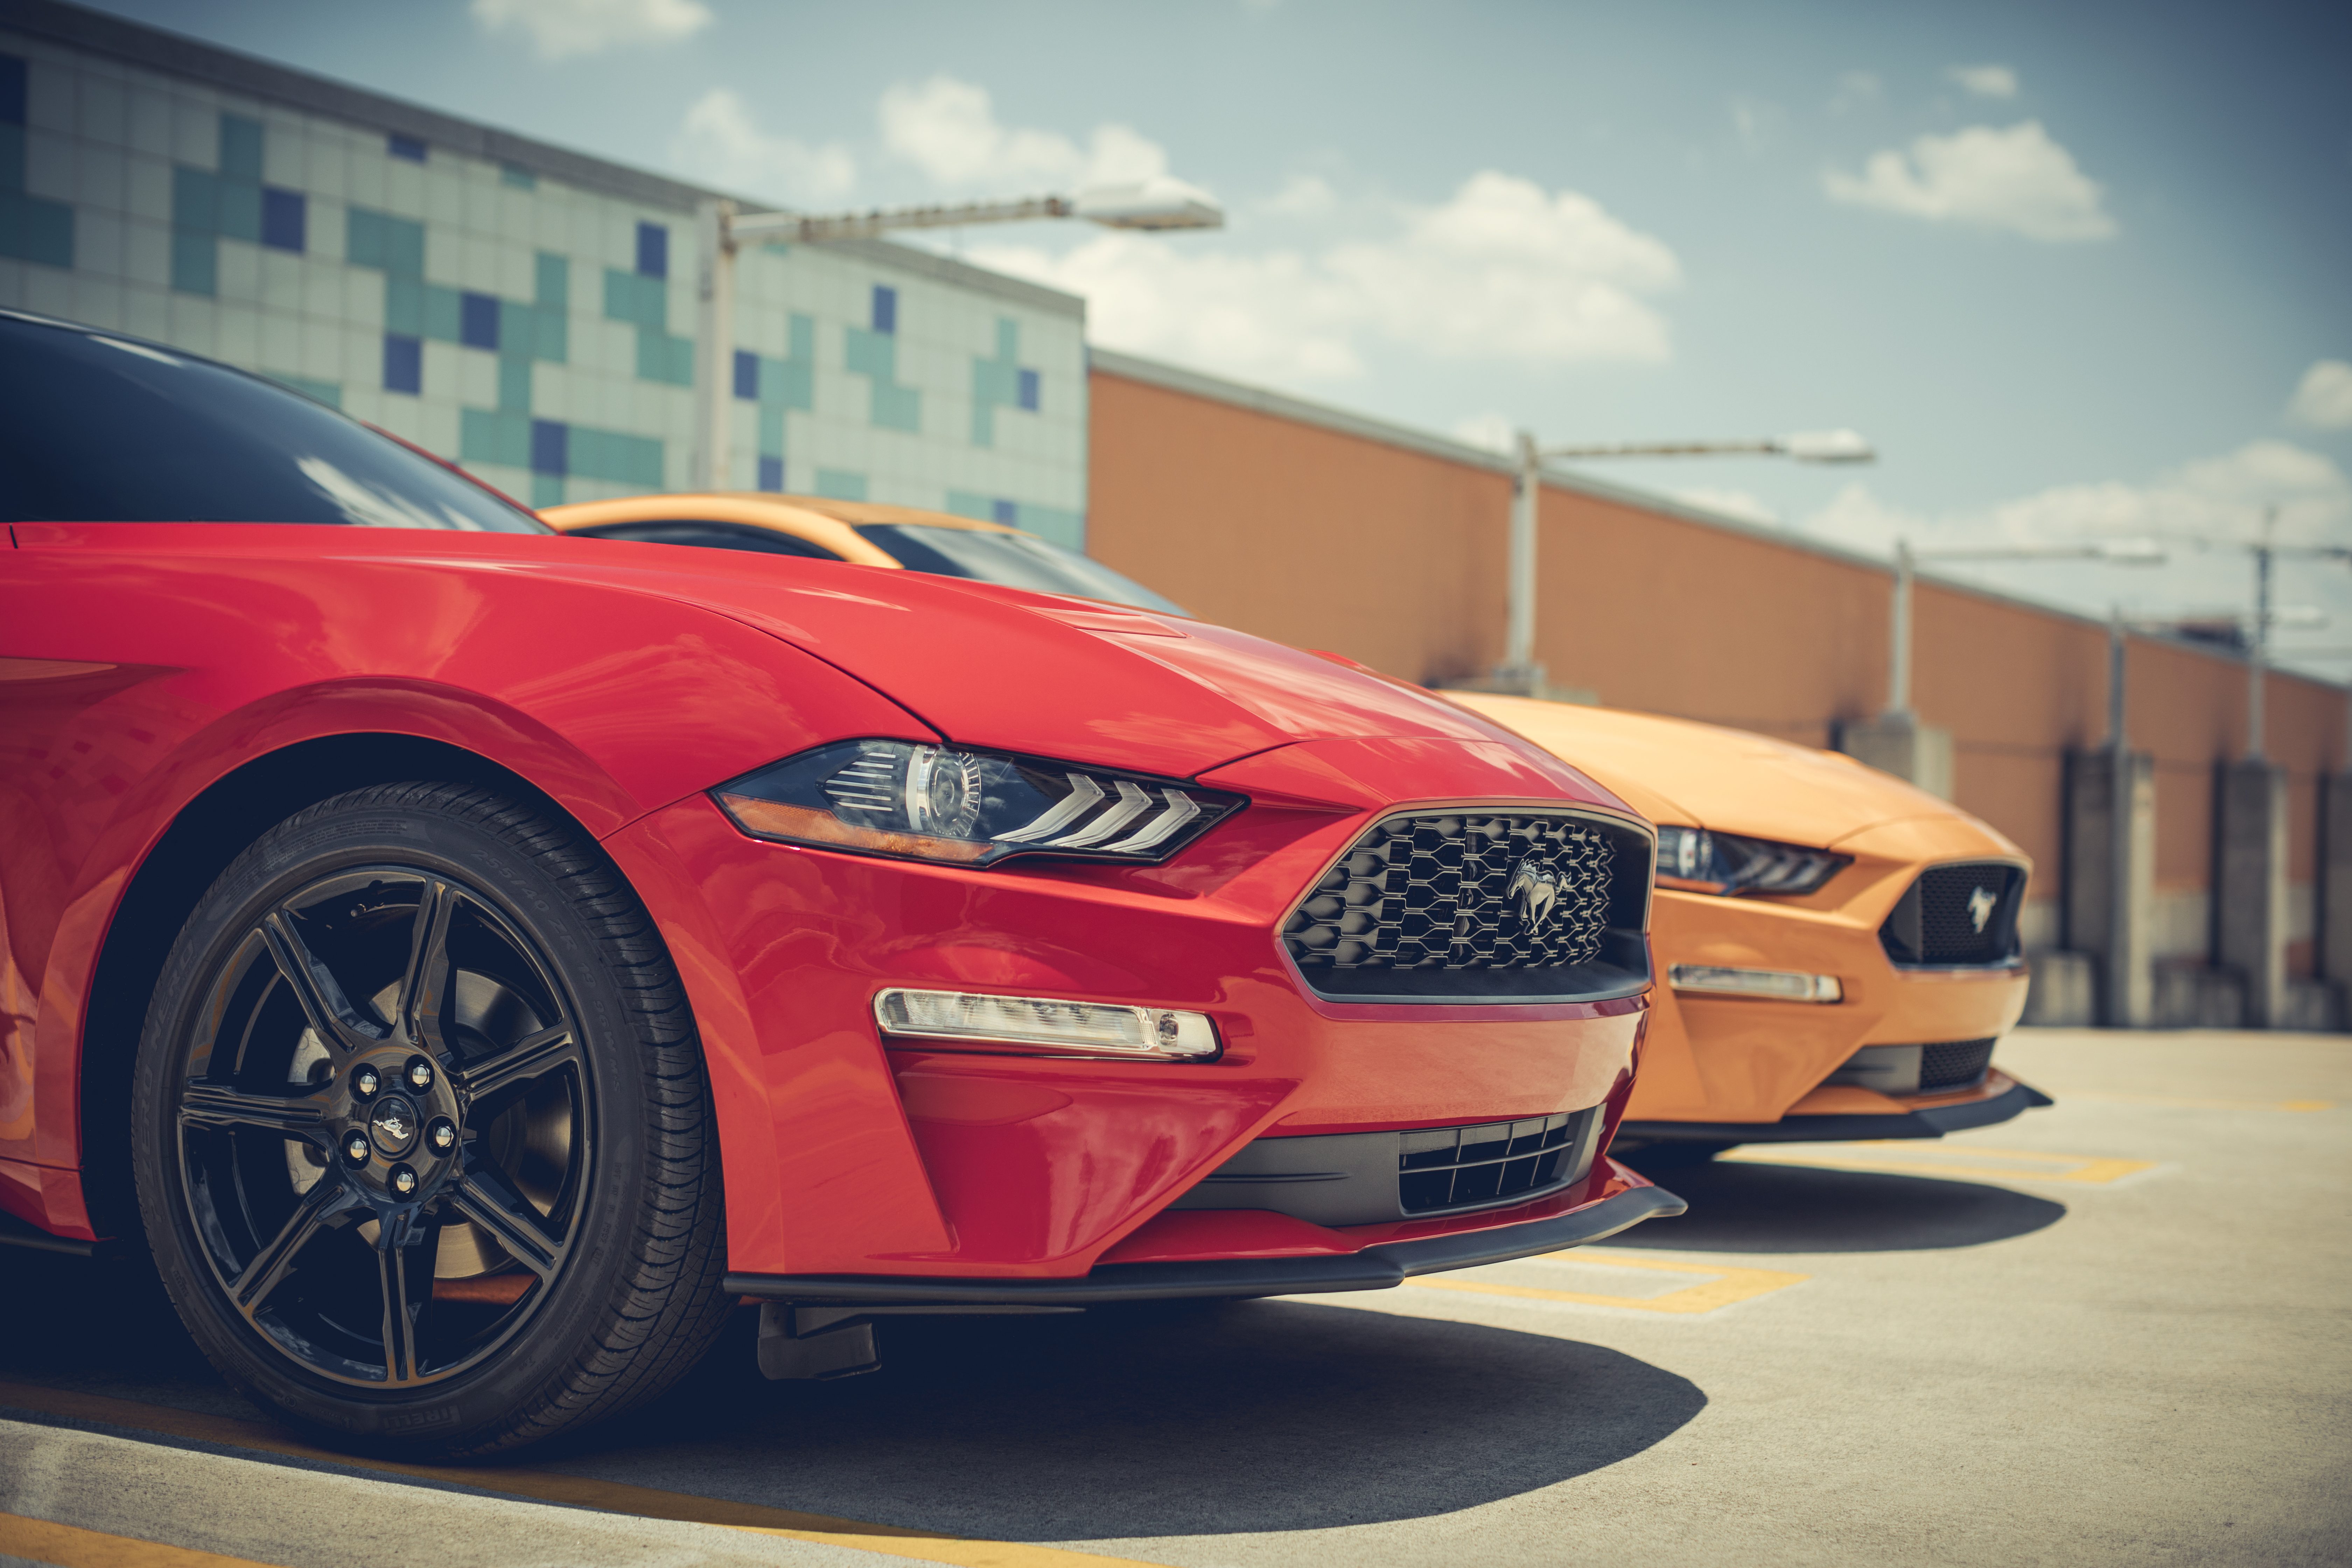 Ford Mustangs available in Elizabethtown, KY at Oxmoor Ford Lincoln